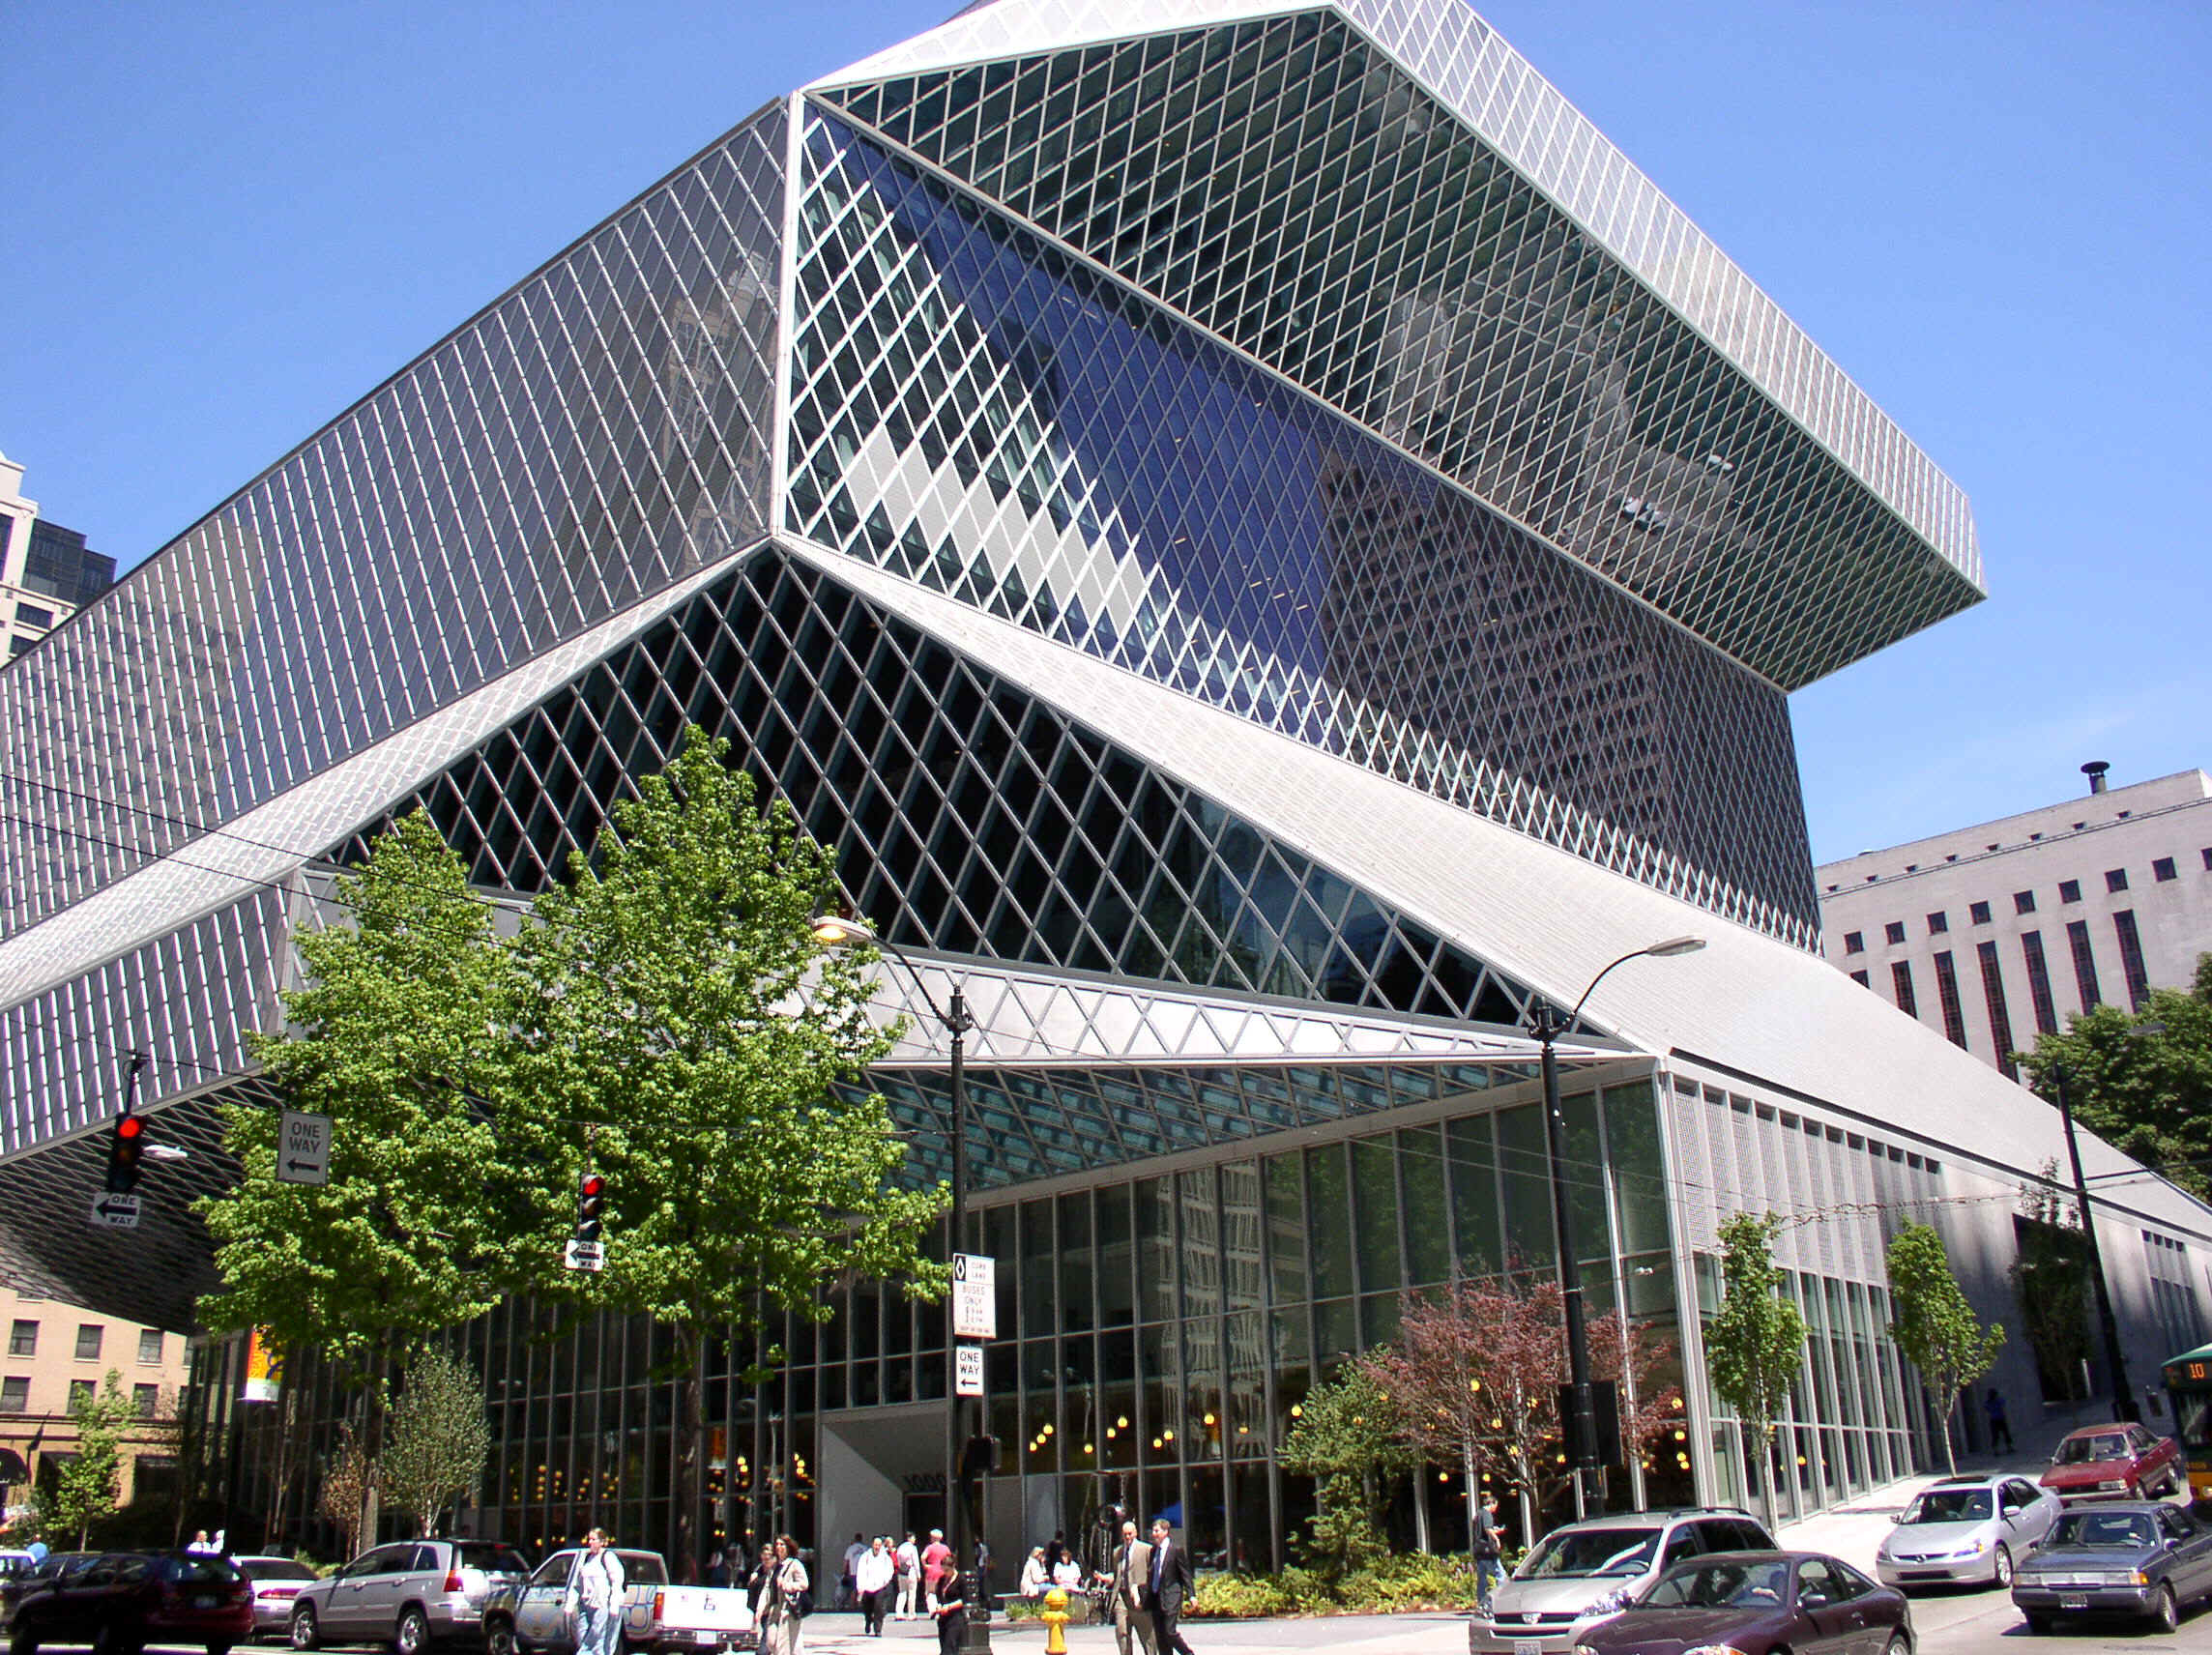 Downtown Public Library, Seattle, Washington